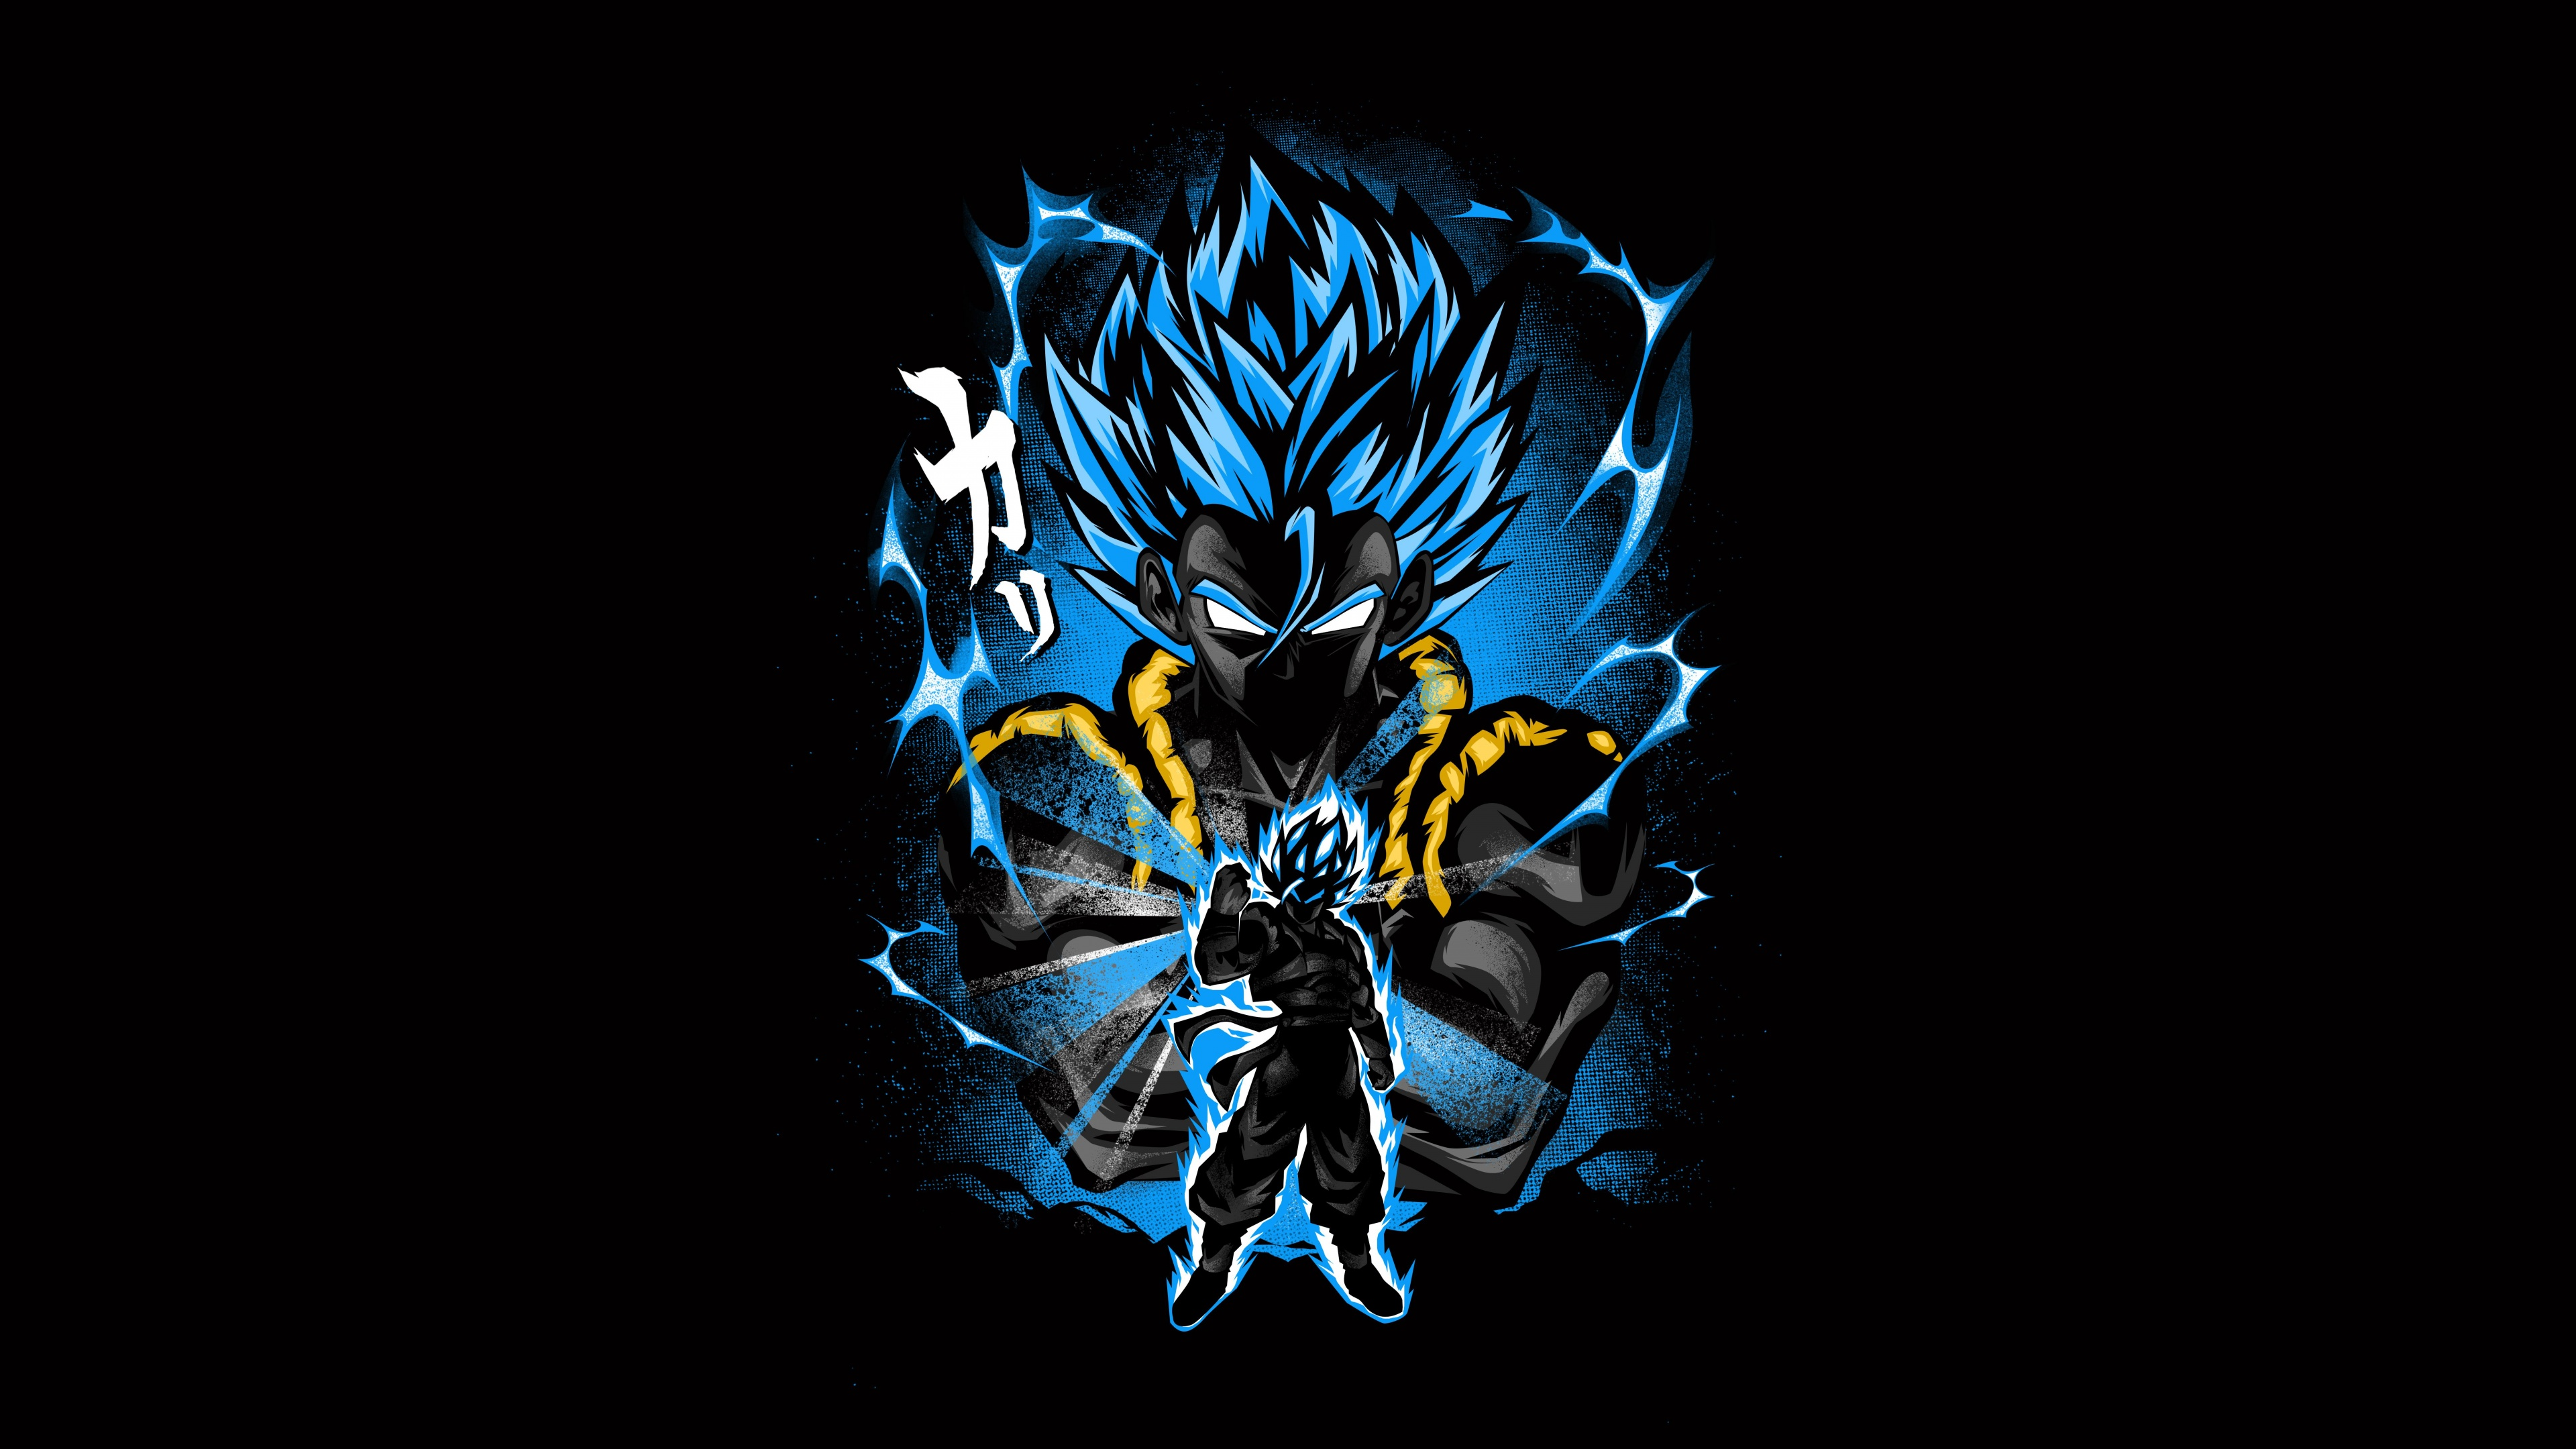 Goku 4k Wallpaper Fusion Attack Dragon Ball Z Anime Series Black Background Amoled 5k Graphics Cgi 1920